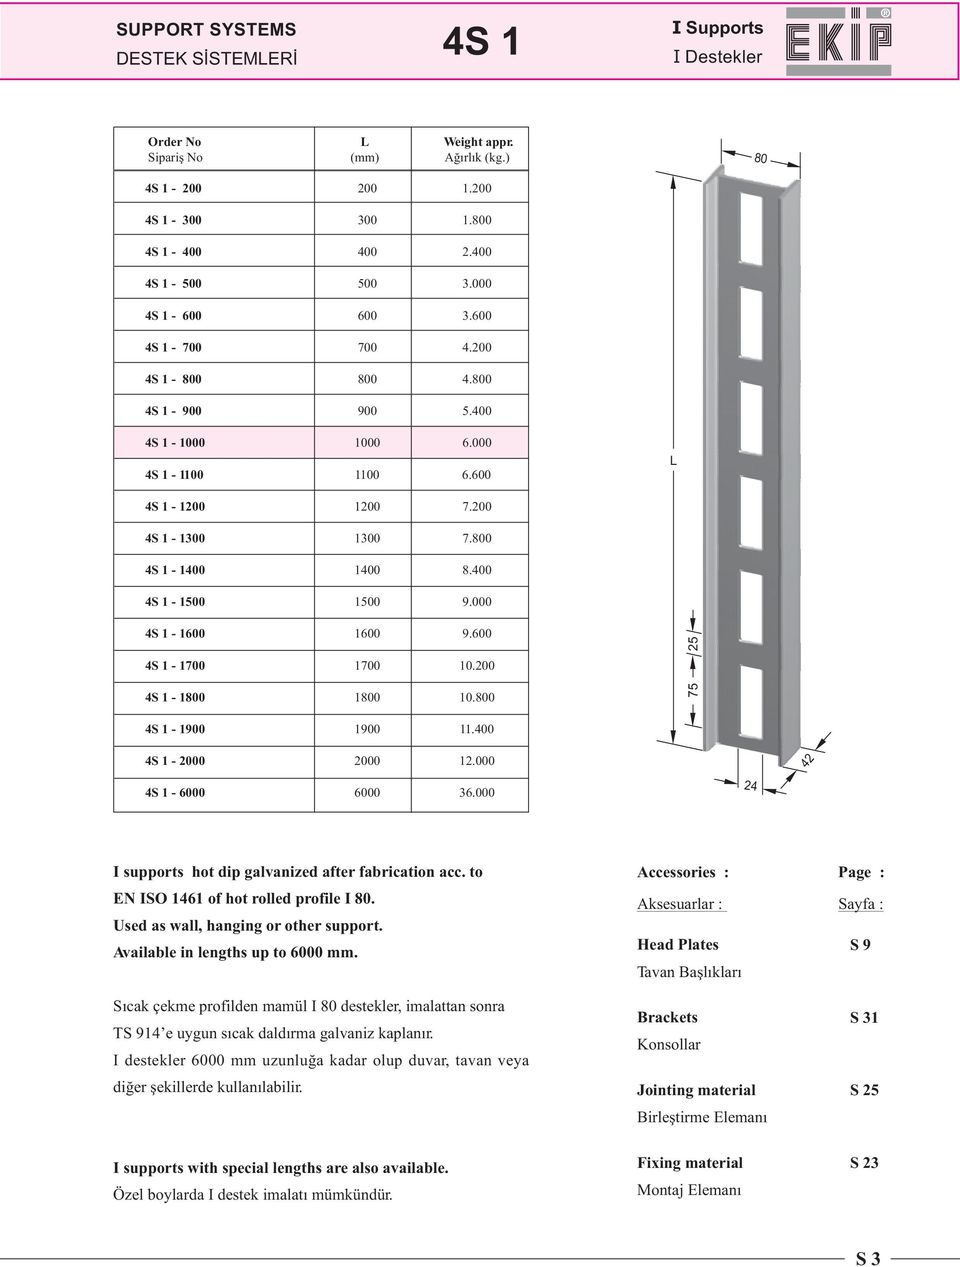 0 75 25 4S 1-1900 1900 11.0 4S 1-2000 2000 12.000 42 4S 1-6000 6000 36.000 24 I supports hot dip galvanized after fabrication acc. to EN ISO 1461 of hot rolled profile I.